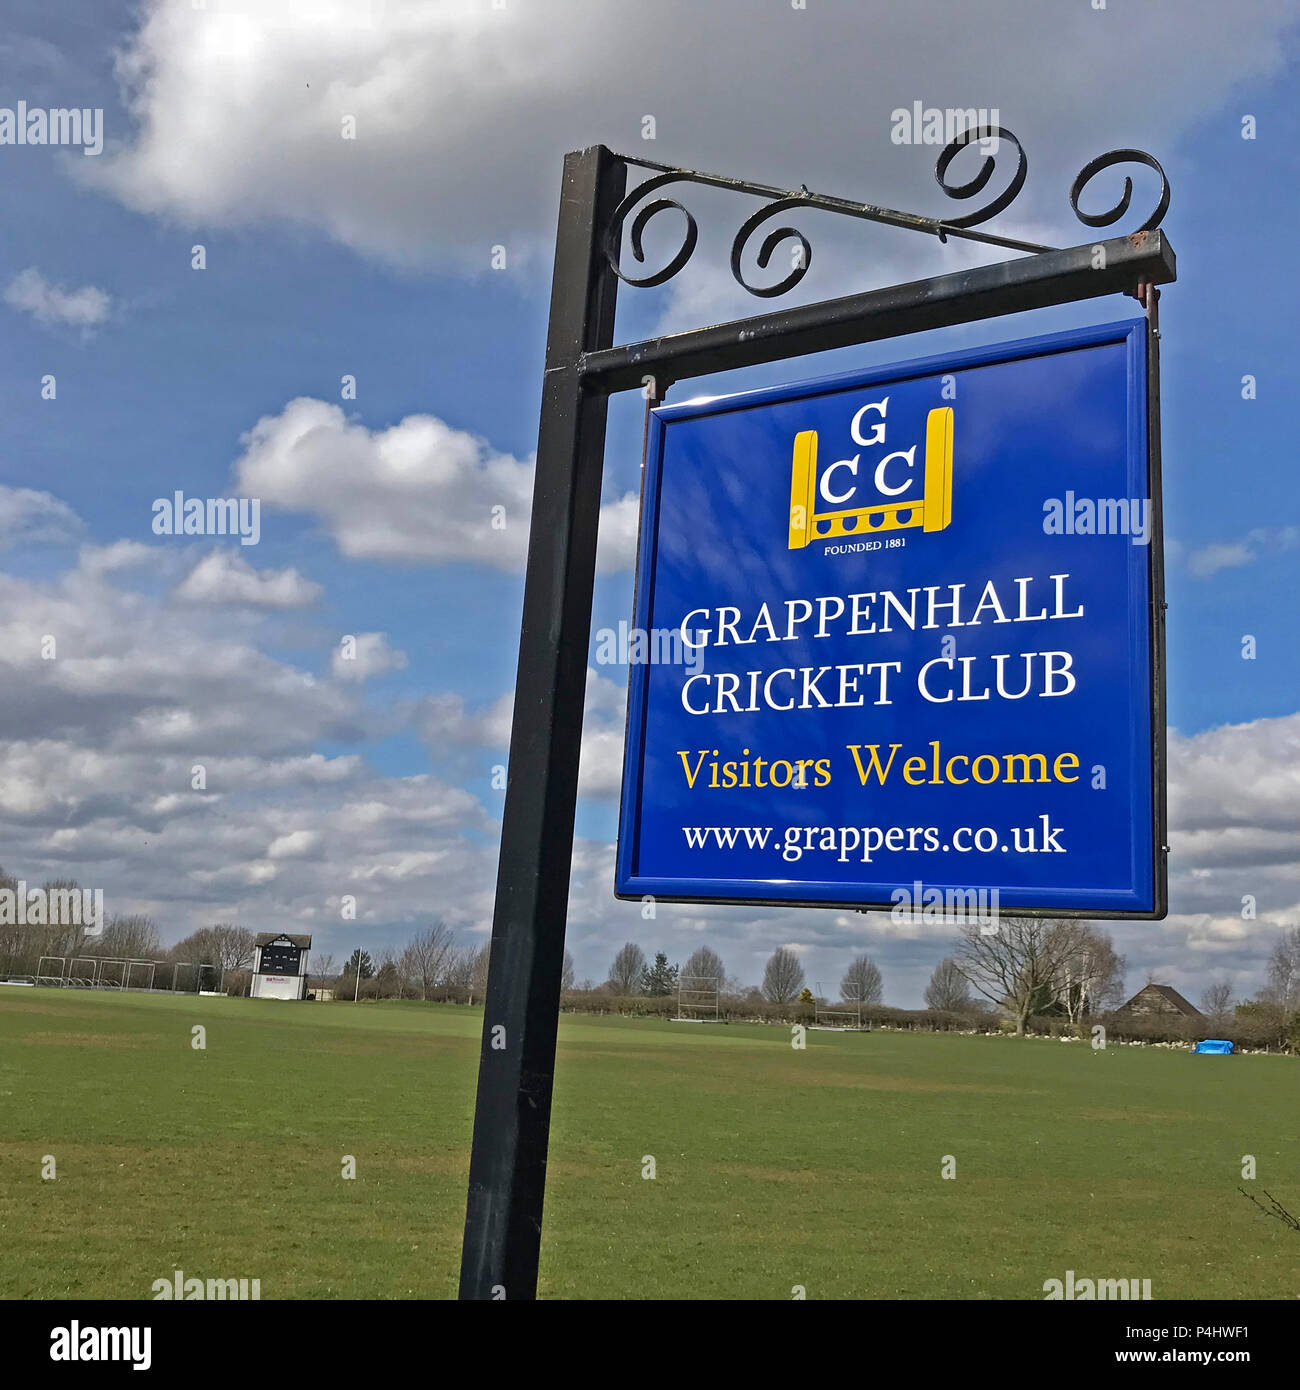 GoTonySmith,@HotpixUK,sign,Village,Warrington,North West England,UK,members,player,players,Broad Lane,visitors,welcome,visitors welcome,blue,blue sign,new,summer,scoreboard,GCC,fixture,fixtures,clubhouse,North Cheshire League,Cheshire County Cricket League,Cheshire County,Cricket League,CCCL,Cheshire Cup,Cheshire cricket,season,County League,Division 1,Premier Division,sport,sports,club,clubs,Legends Events